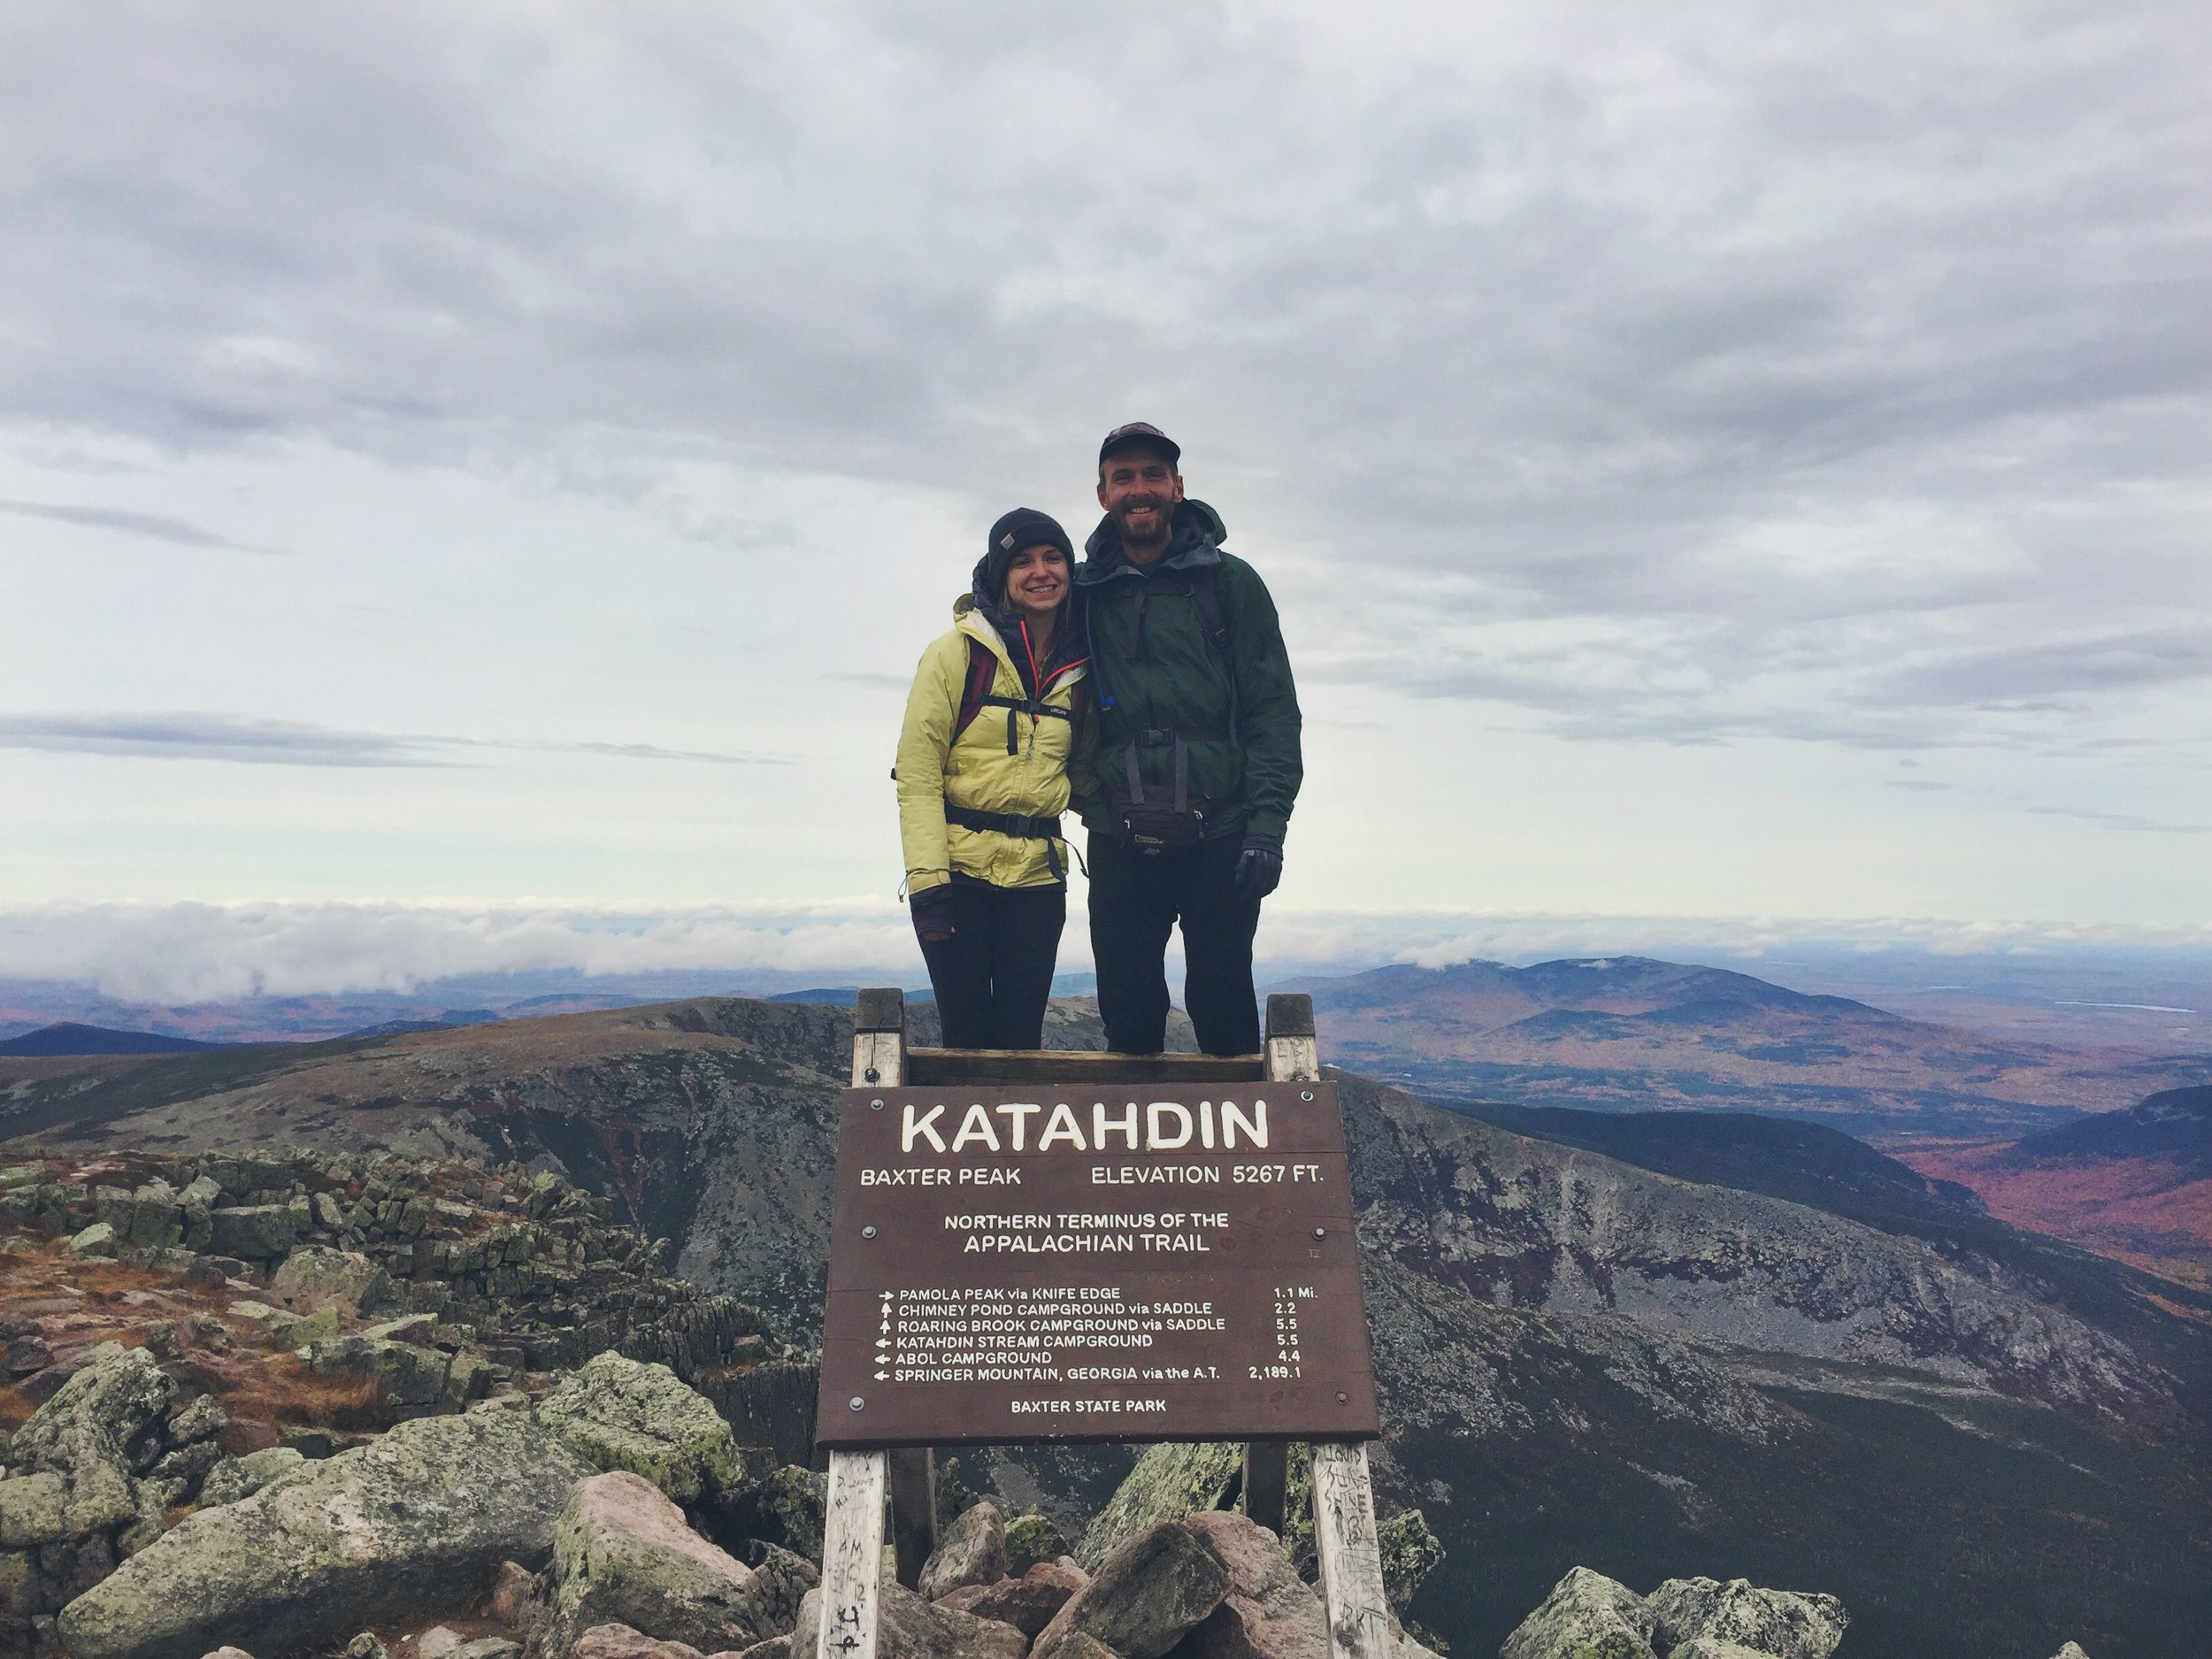 Moose and Teton experiencing their first clear day on Katahdin!